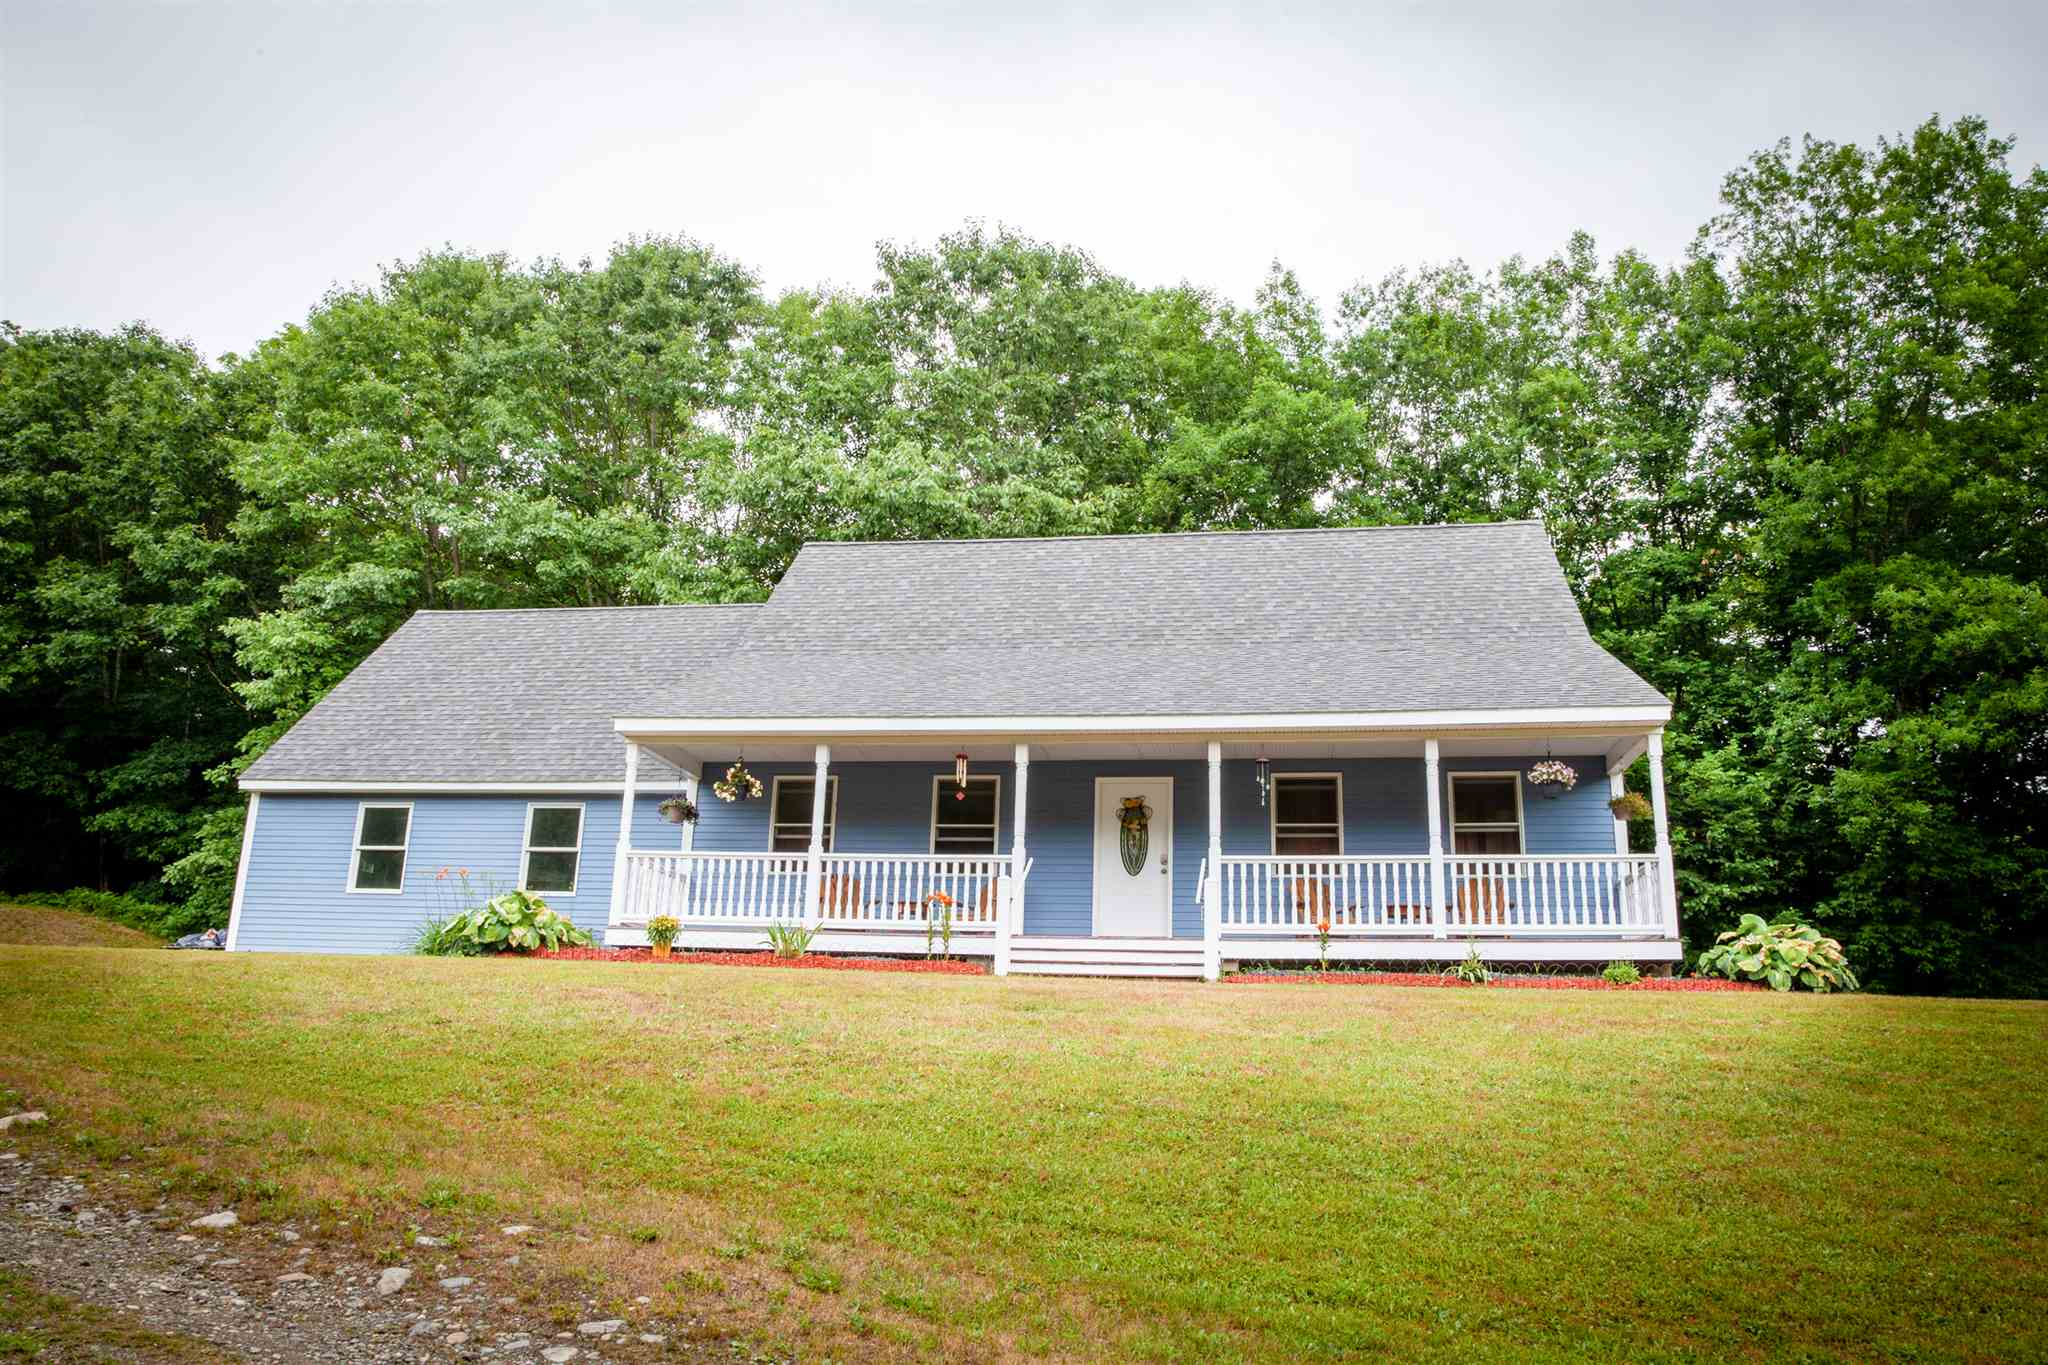 MLS 4813984: 285 Tory Hill Road, Langdon NH